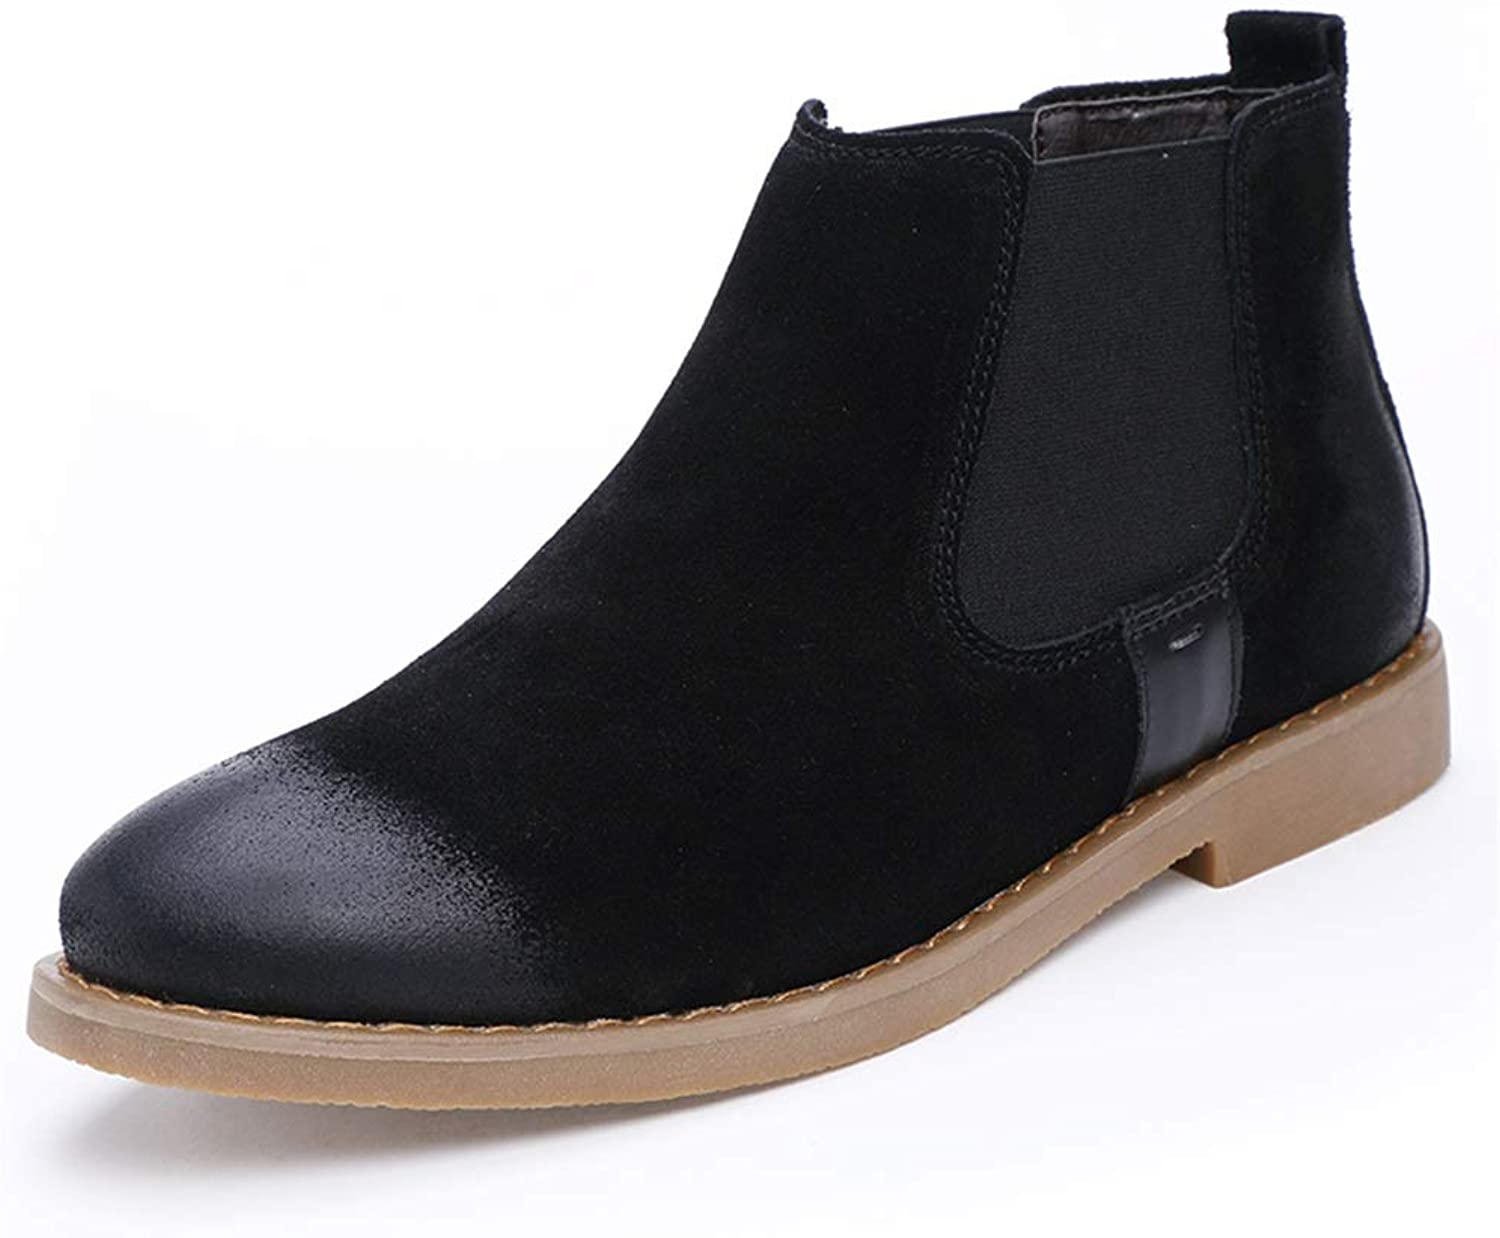 Easy Go Shopping Chelsea Boot For Man Ankle Boot Slip On OX Suede Leather Simple Pure color Cricket shoes (color   Black, Size   5.5 UK)